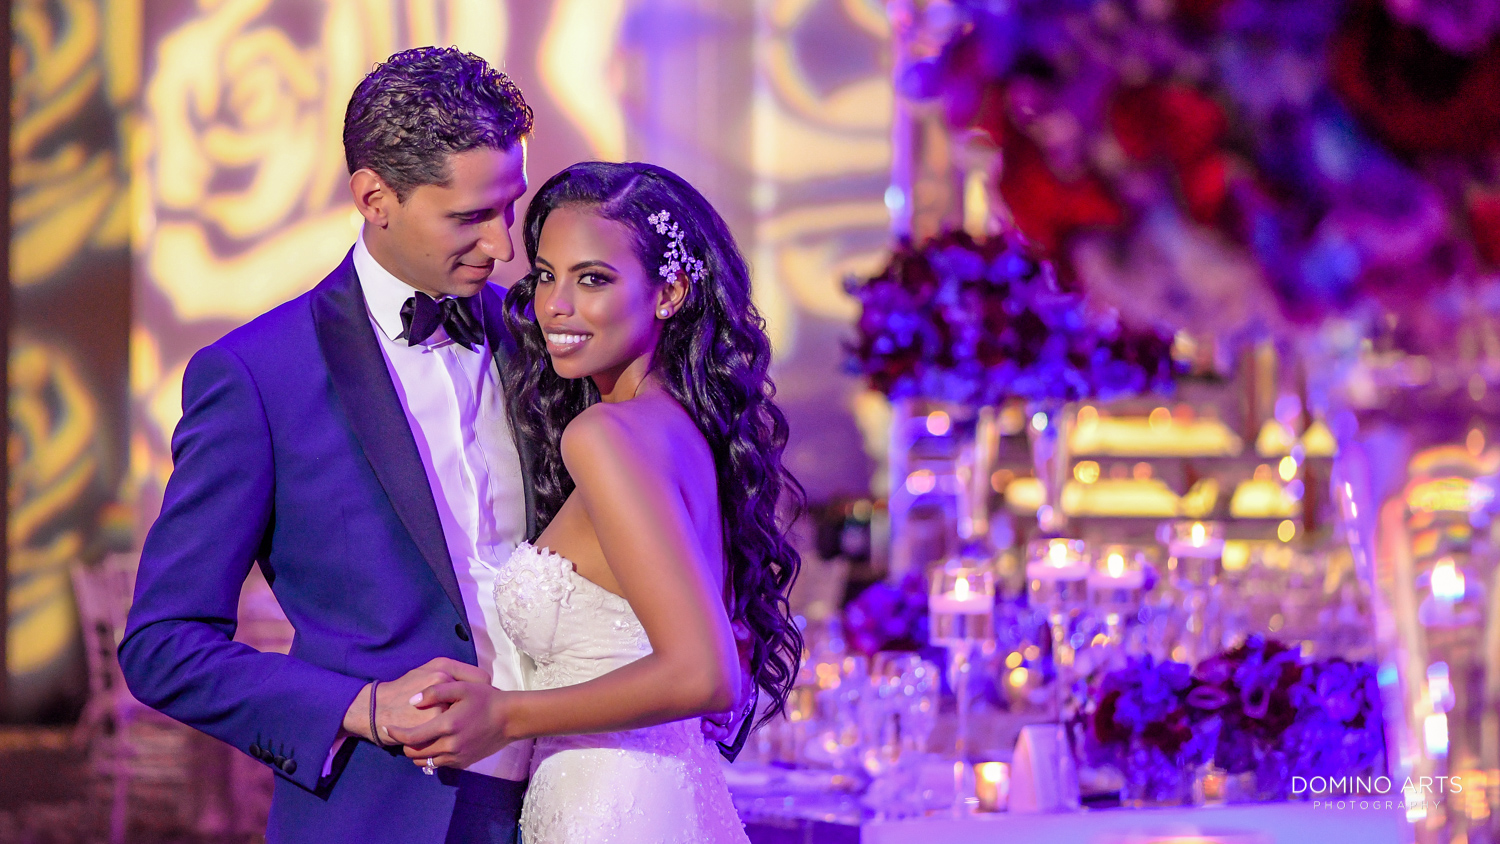 Beautiful Elegant wedding picture of bride and groom at The St. Regis Bal Harbour